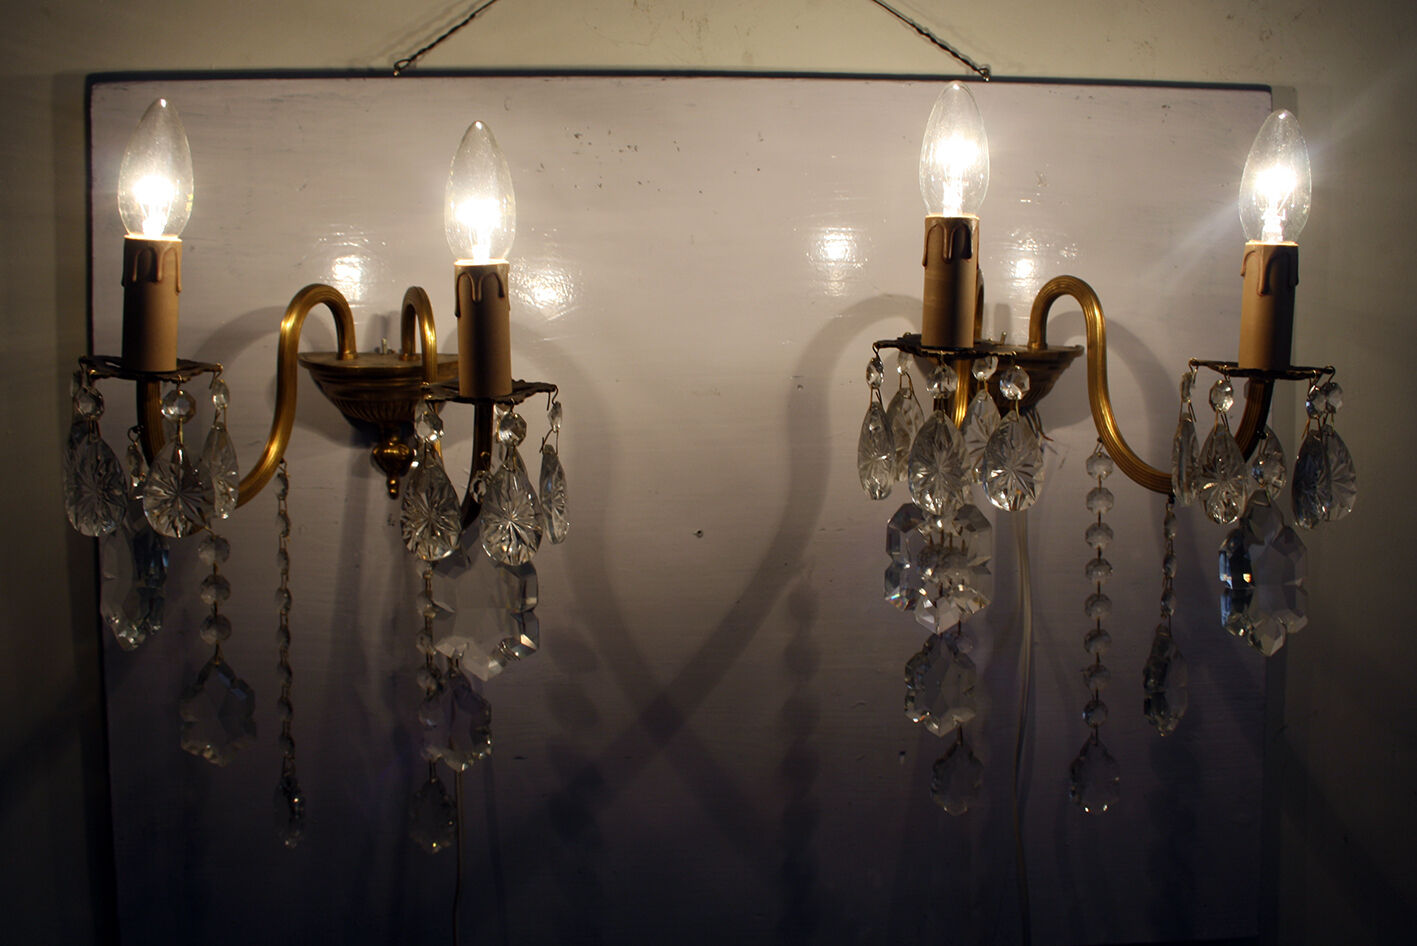 Pair of Antique / Vintage Armed Brass &  Crystals  Wall Sconces Chandelier